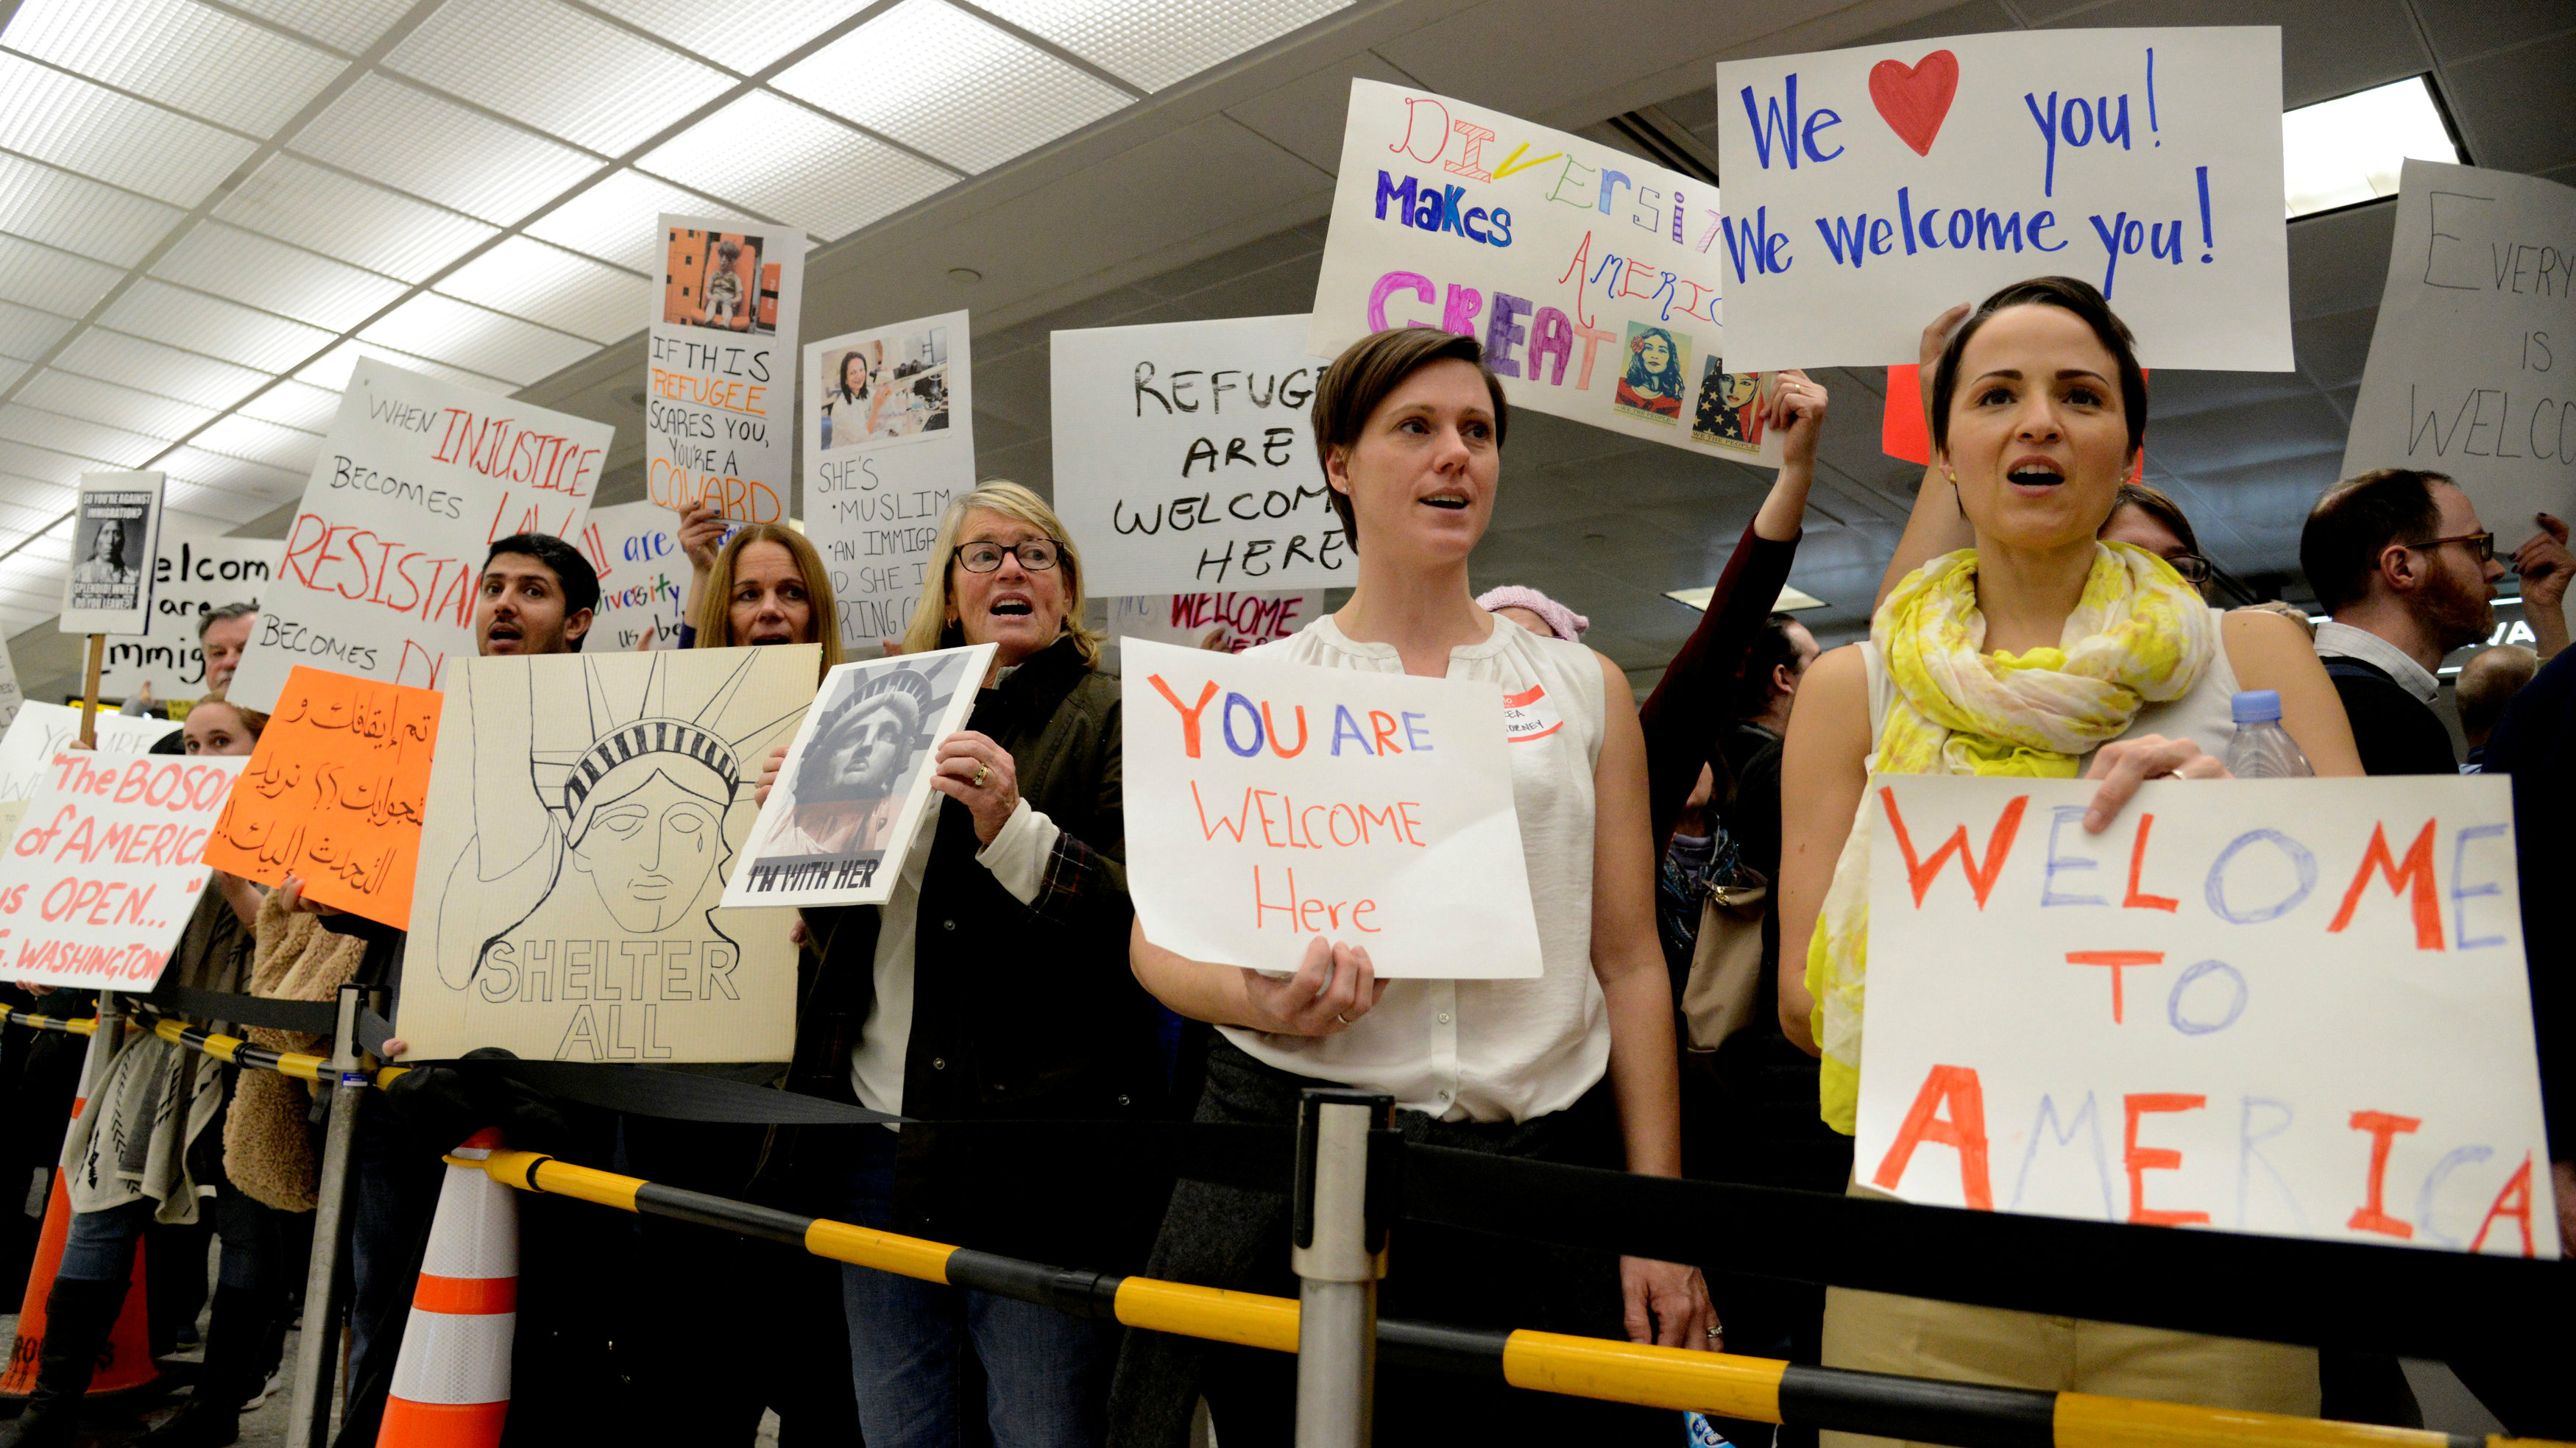 Dozens of pro-immigration demonstrators cheer and hold sign as international passengers arrive at Dulles International Airport, to protest President Donald Trump's executive order baring visitors, refugees and immigrants from certain countries to the United States, in Chantilly, Virginia, in suburban Washington, U.S., January 29, 2017.